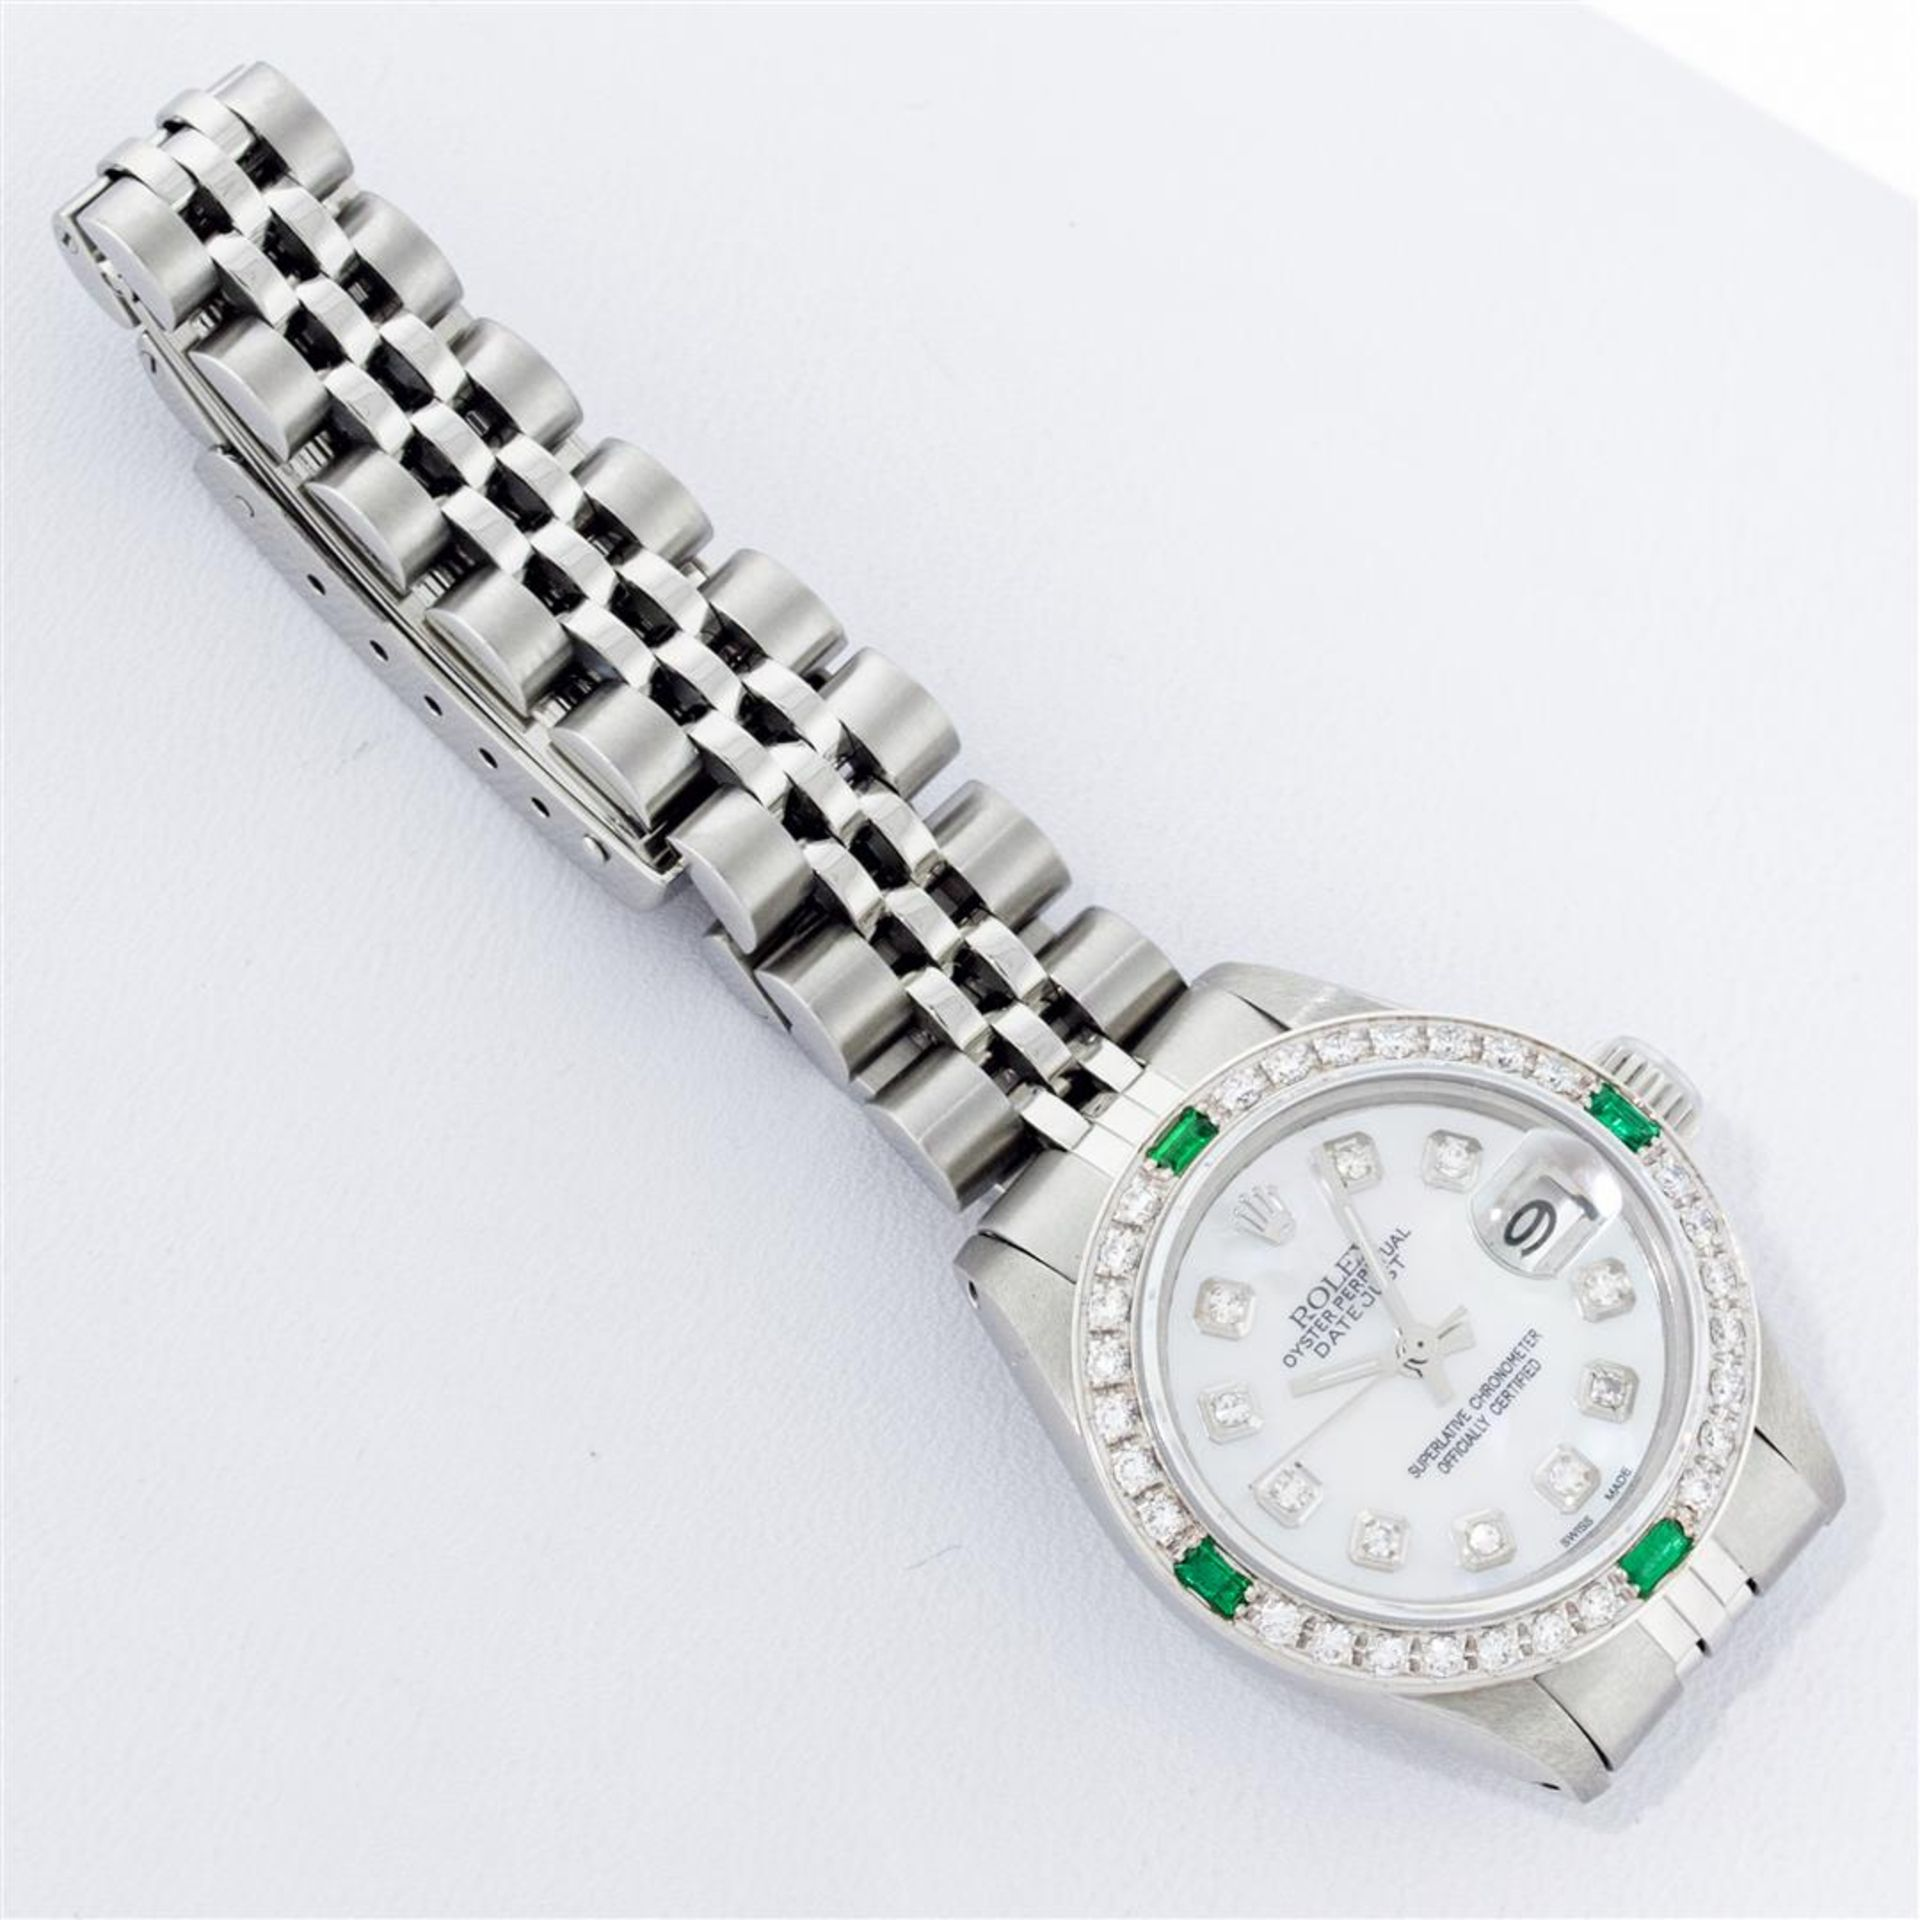 Rolex Ladies Stainless Steel Mother Of Pearl Diamond 26MM Datejust Wristwatch - Image 6 of 9